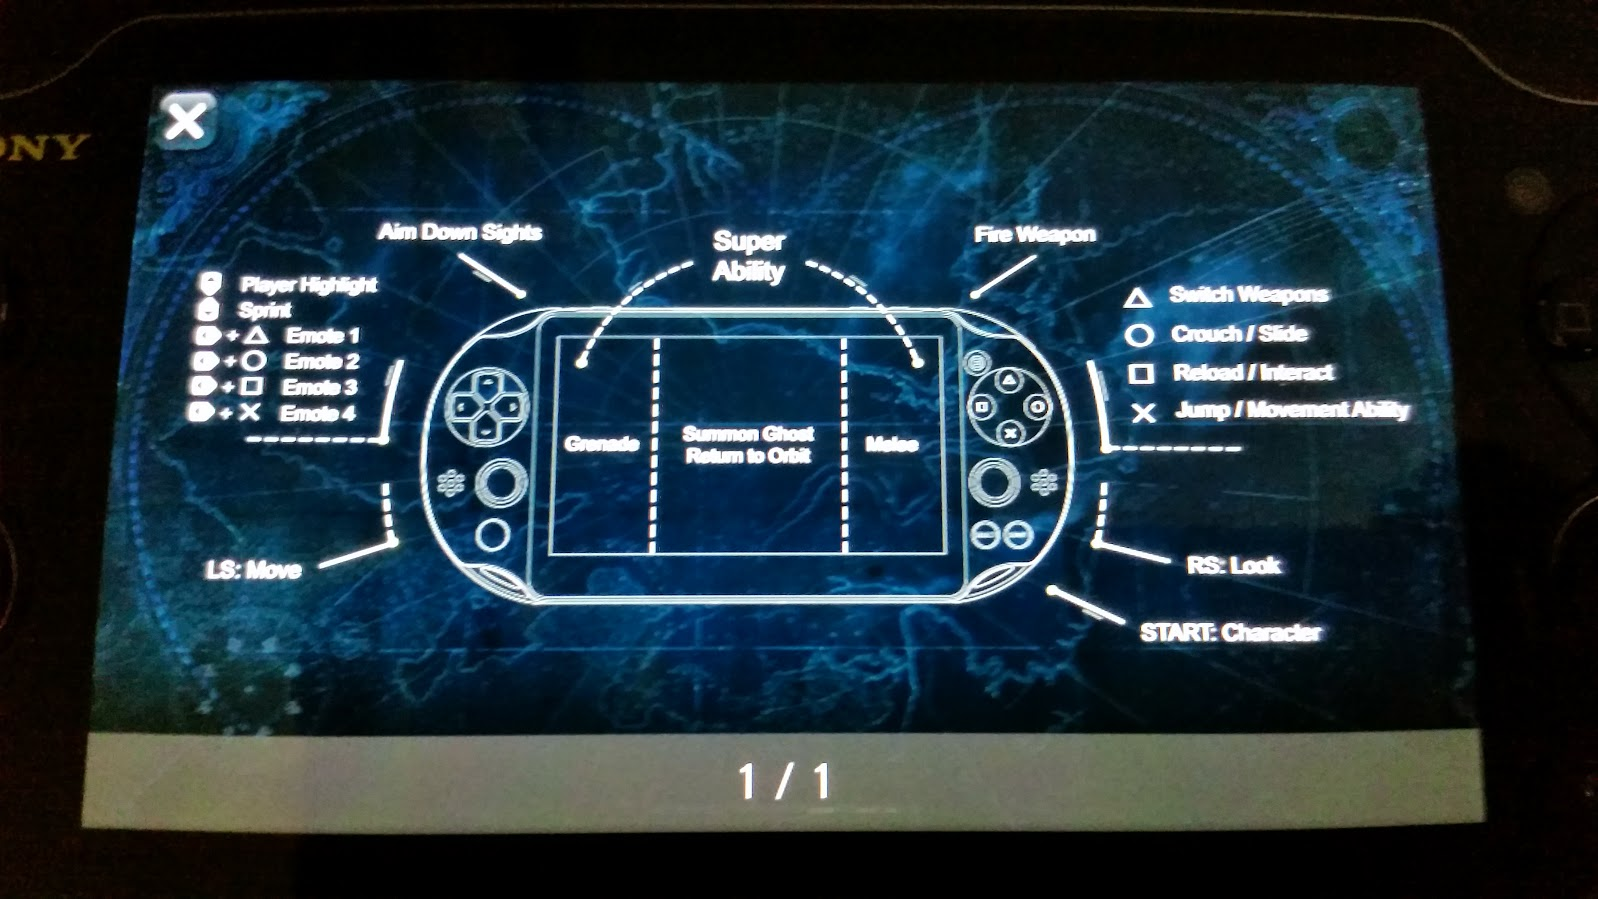 Destiny Remote Play control scheme